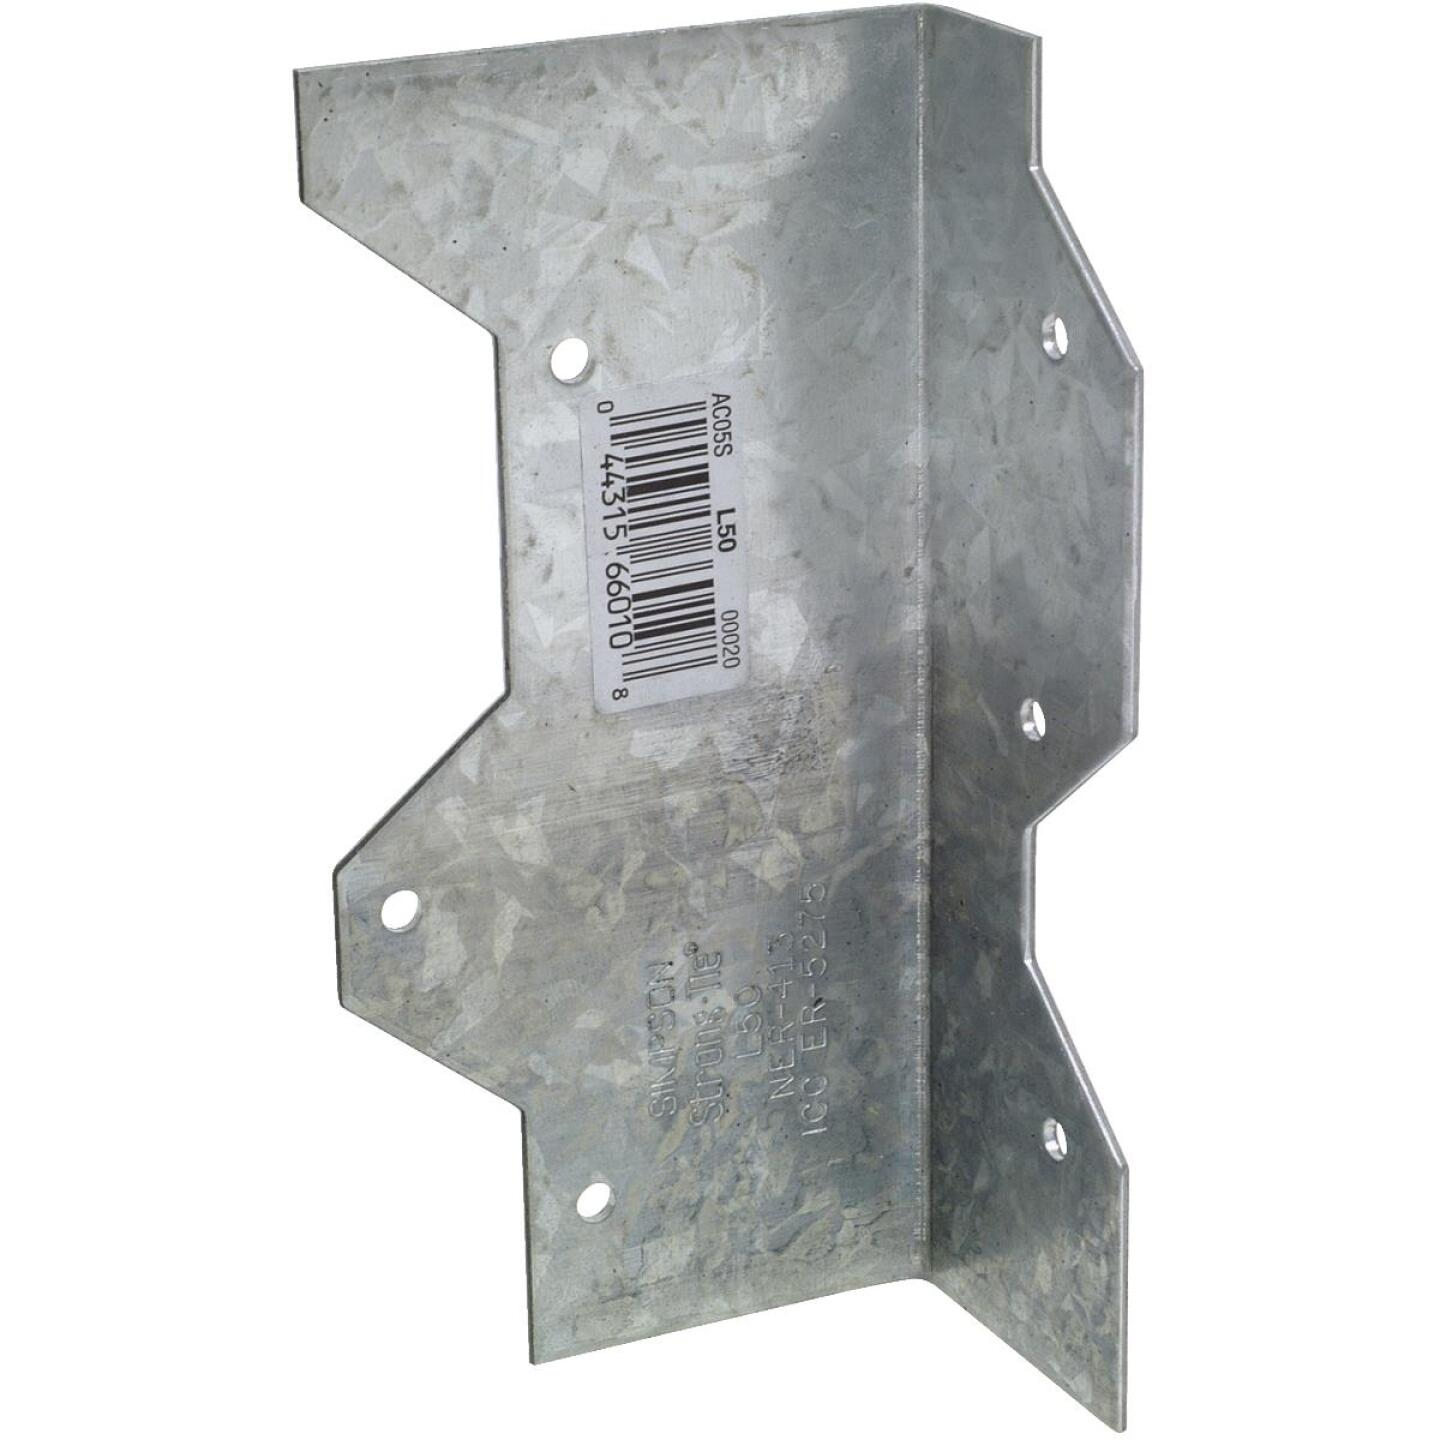 Simpson Strong-Tie 5 In. Galvanized Steel 16 ga Reinforcing L-Angle Image 1